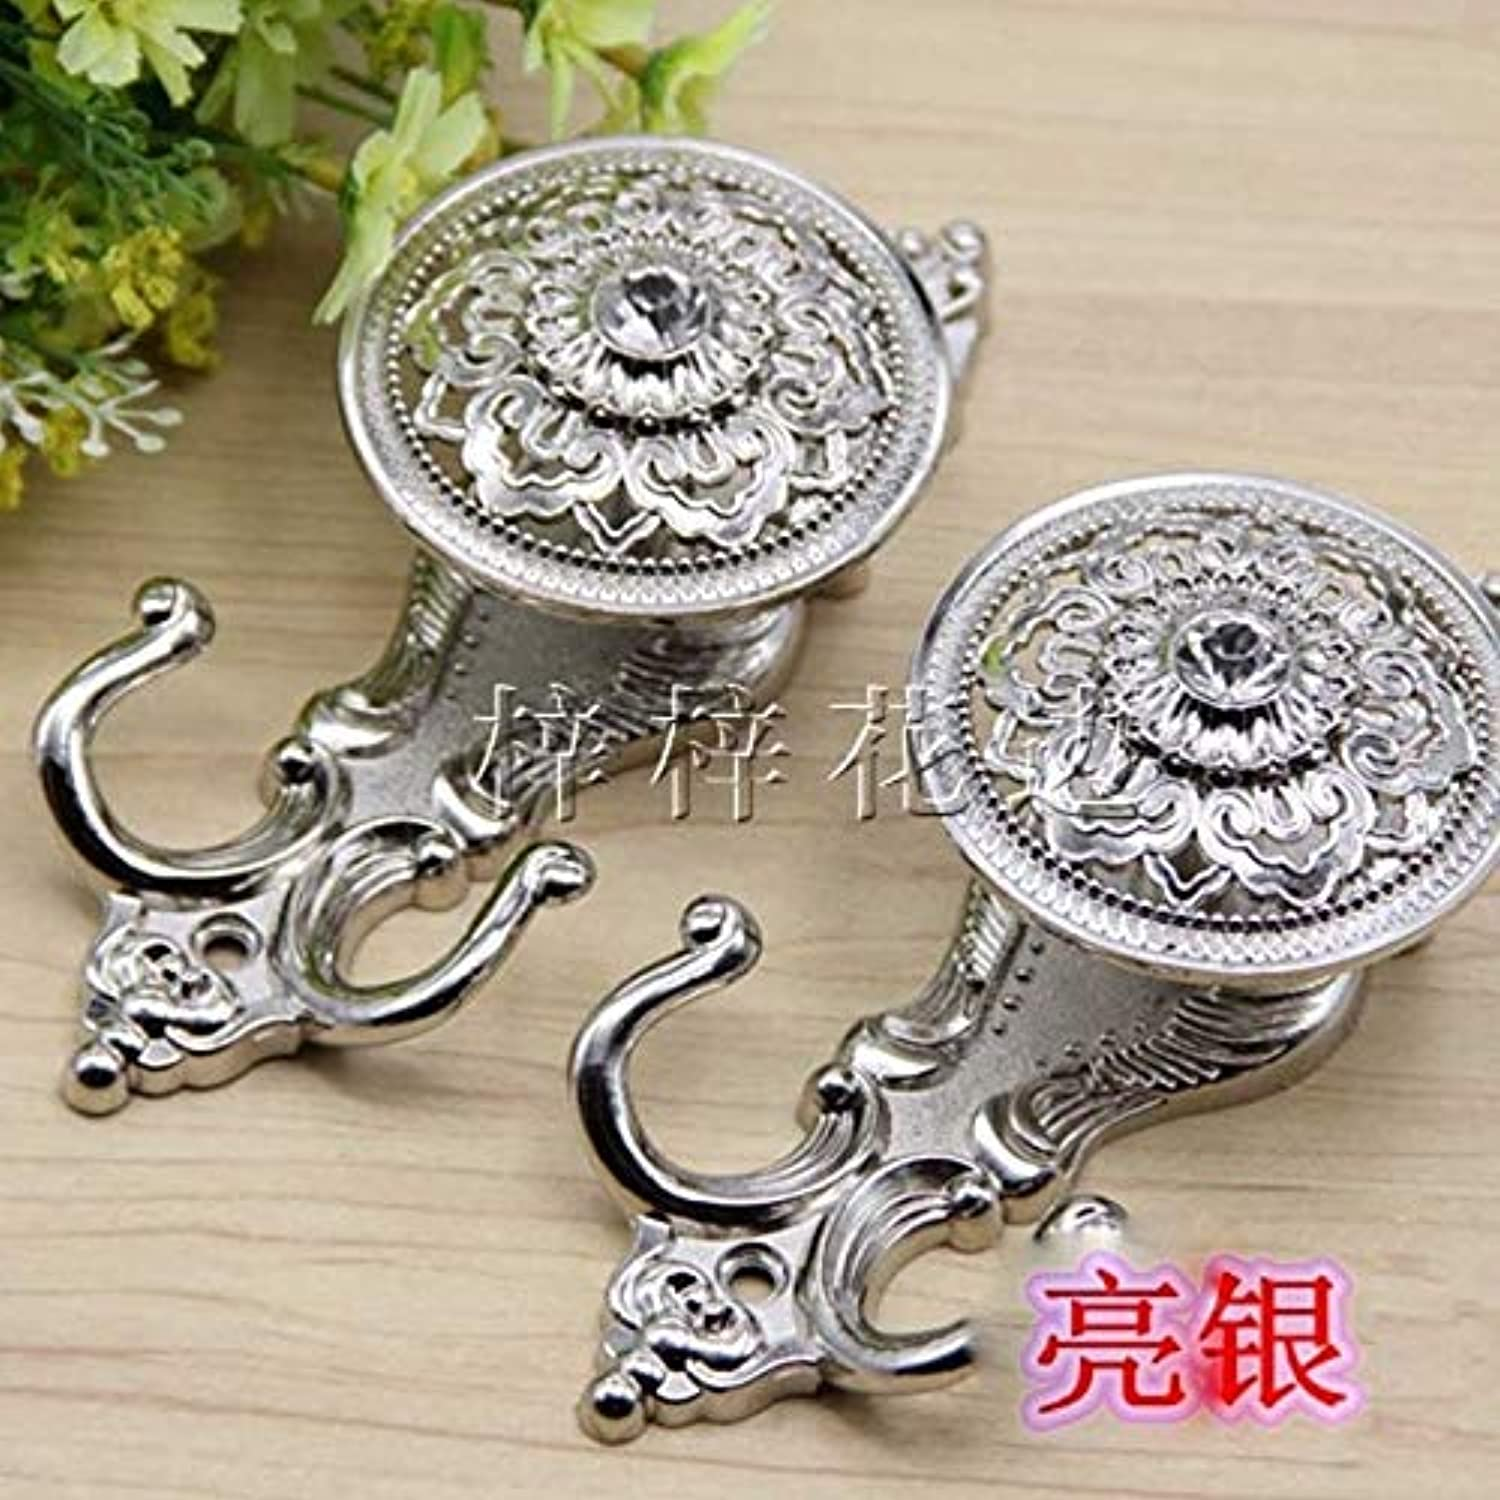 Isali Curtain Hanging Hook Hollow Out Ball Style Never Rust Curtain Holder Curtain Accessories Decoration Wholesale Retail CP042 20 - (color  Style3)